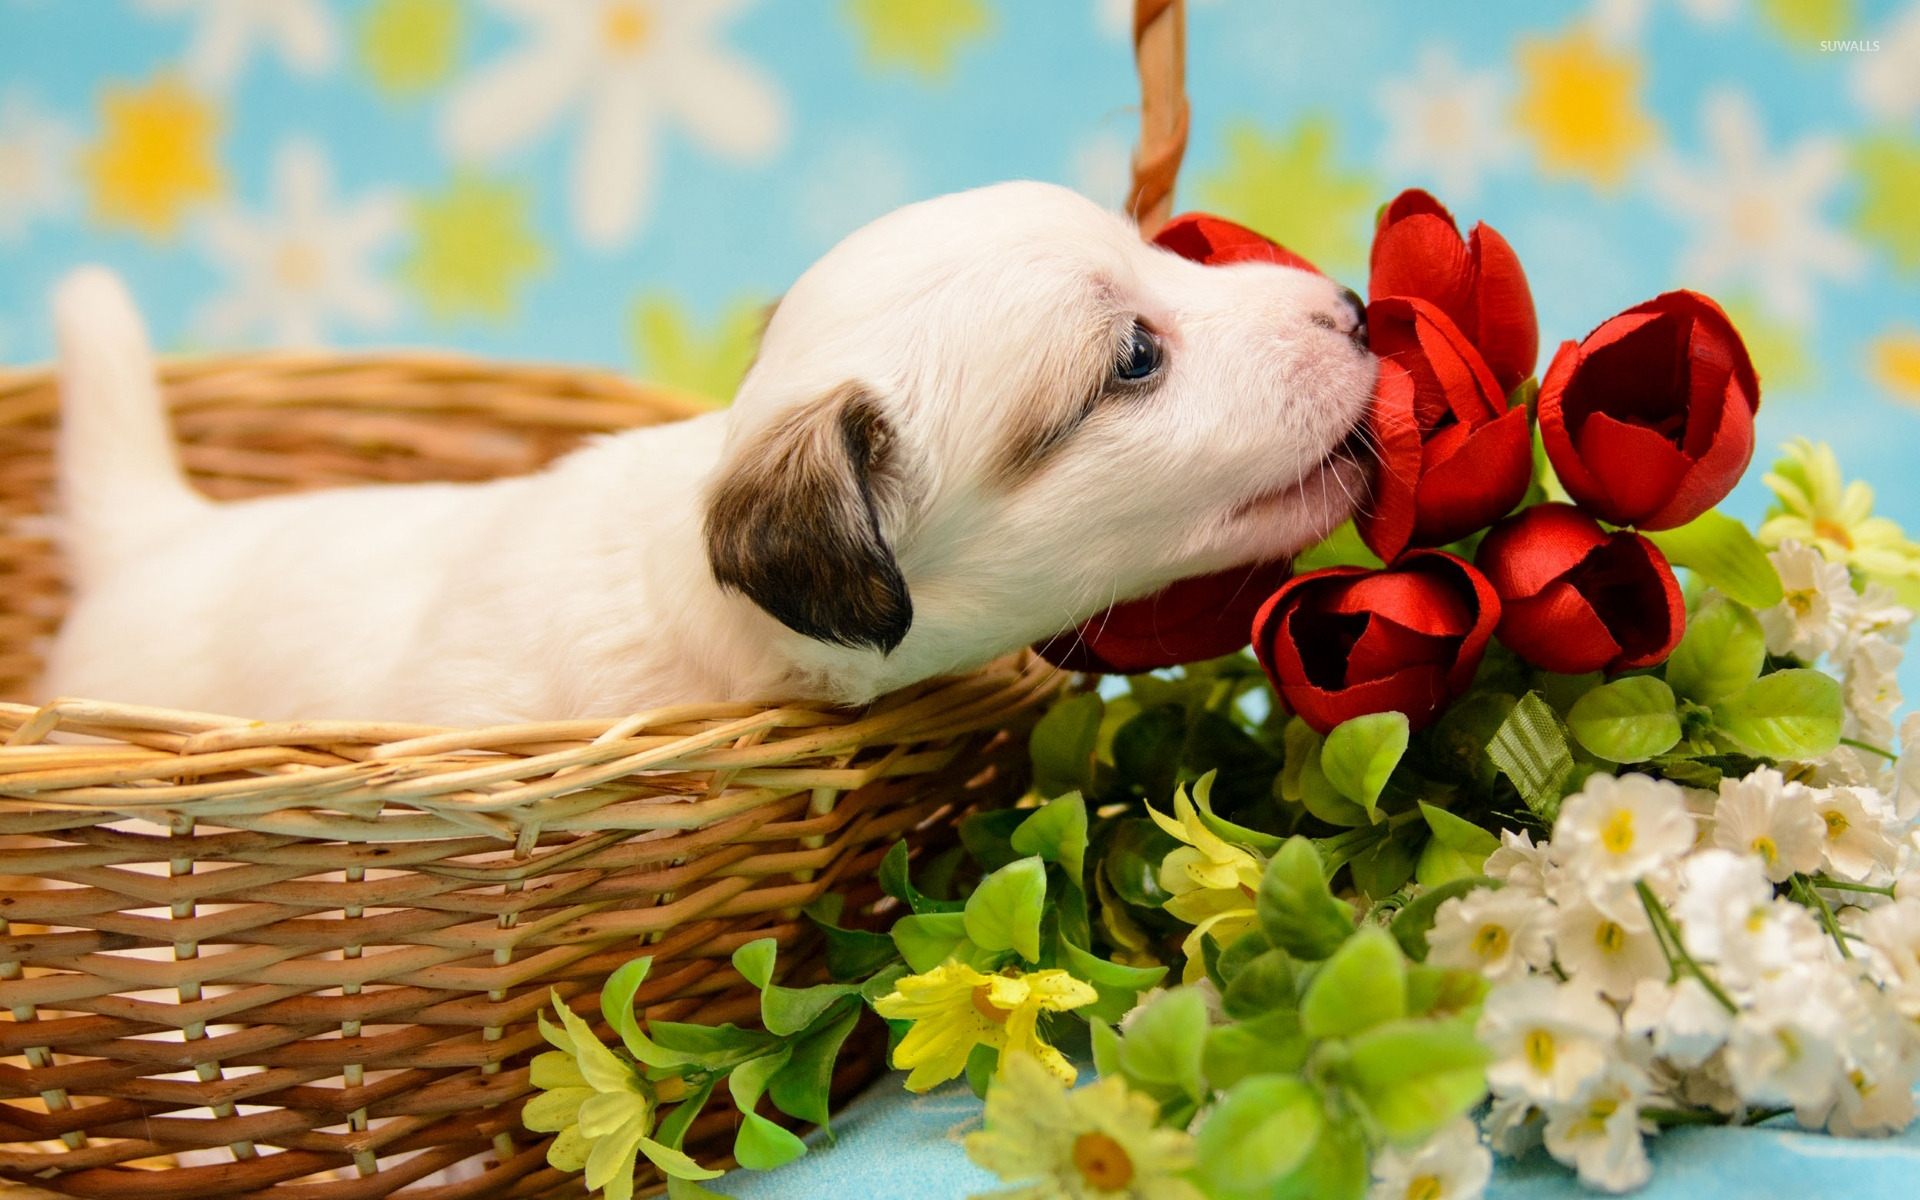 Cute Cats Wallpaper With Quotes Puppy Smelling The Red Tulips Wallpaper Animal